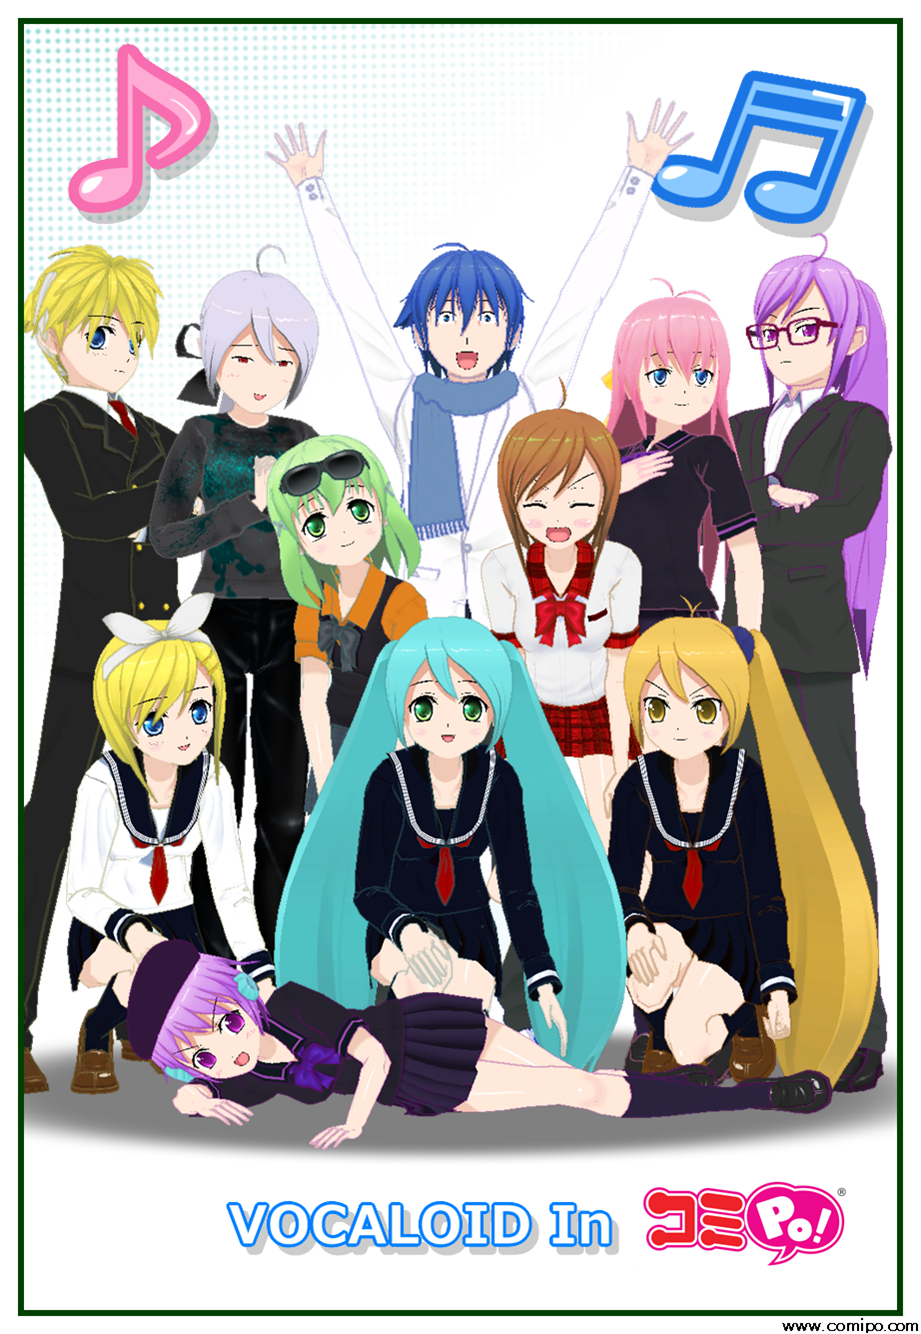 VOCALOID in Comipo!